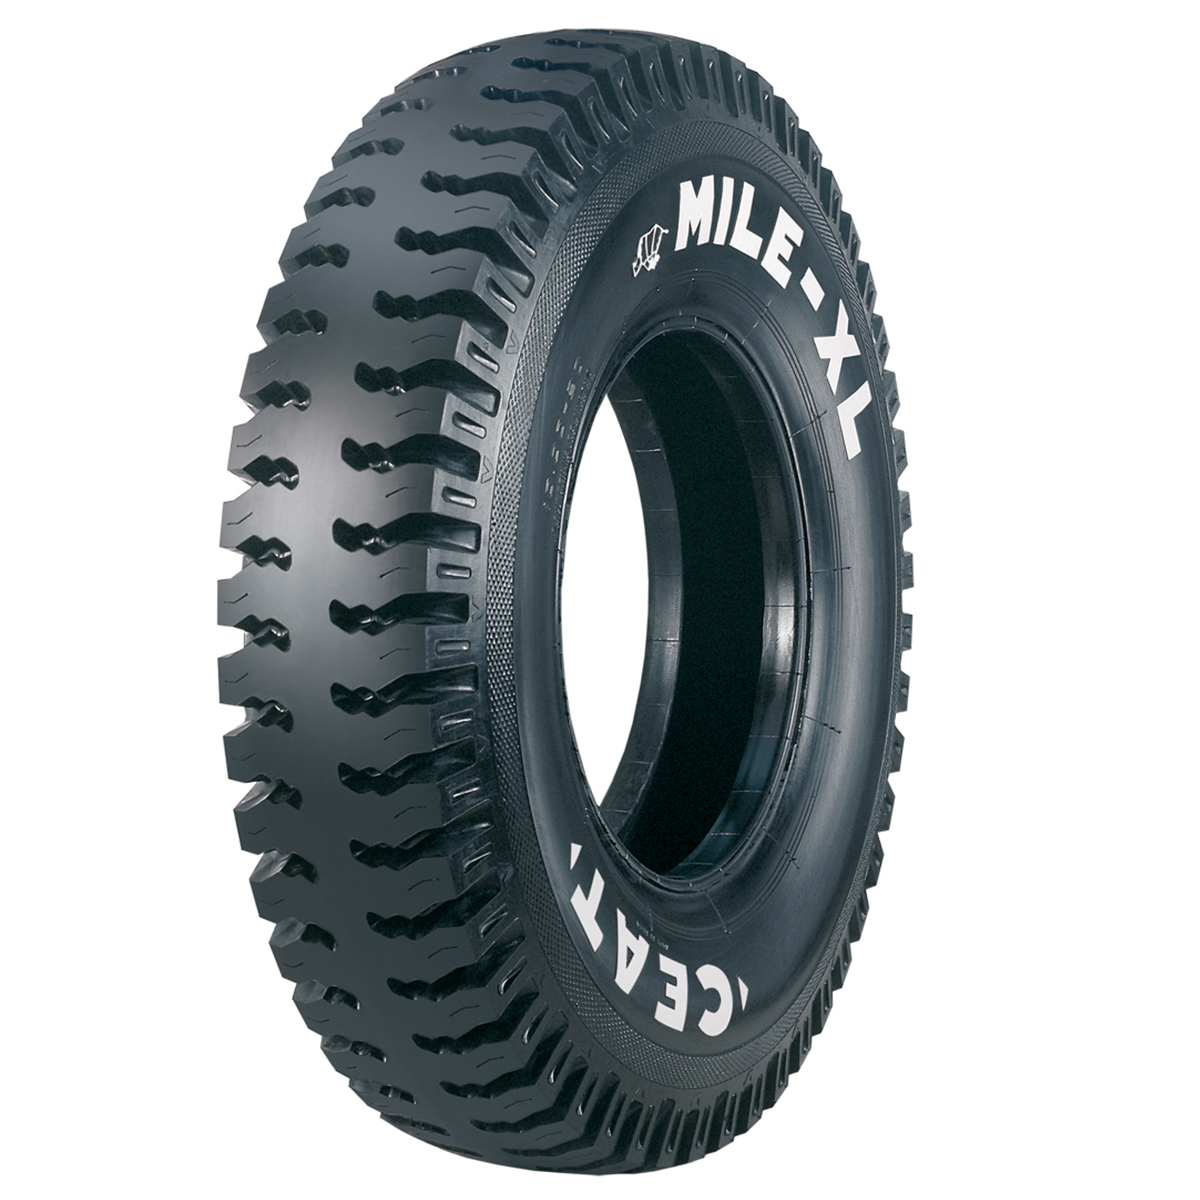 CEAT MILE XL 165/ R 13 Requires Tube 89 J Car Tyre